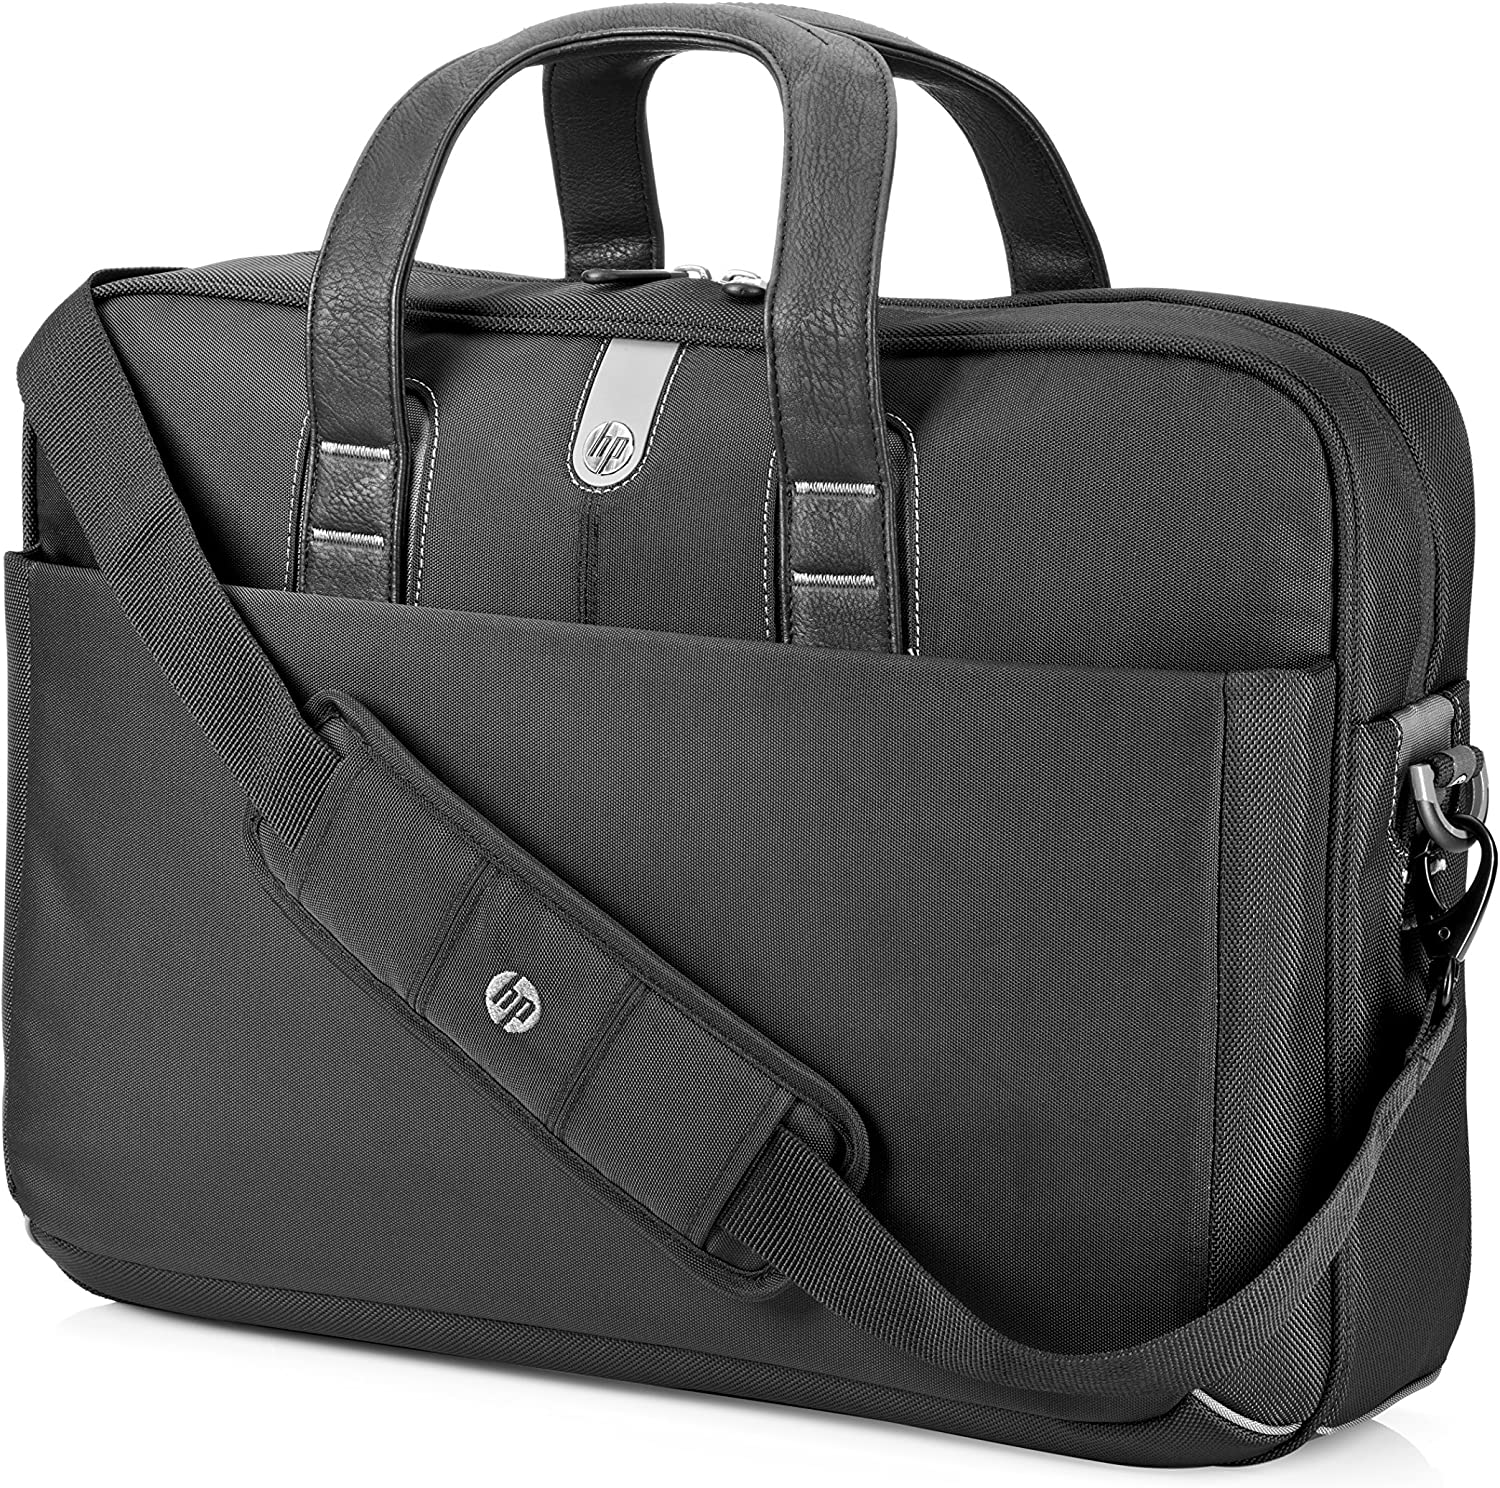 "HP Carrying Case (Briefcase) for 17.3"" Notebook, Tablet PC H4J91AA"